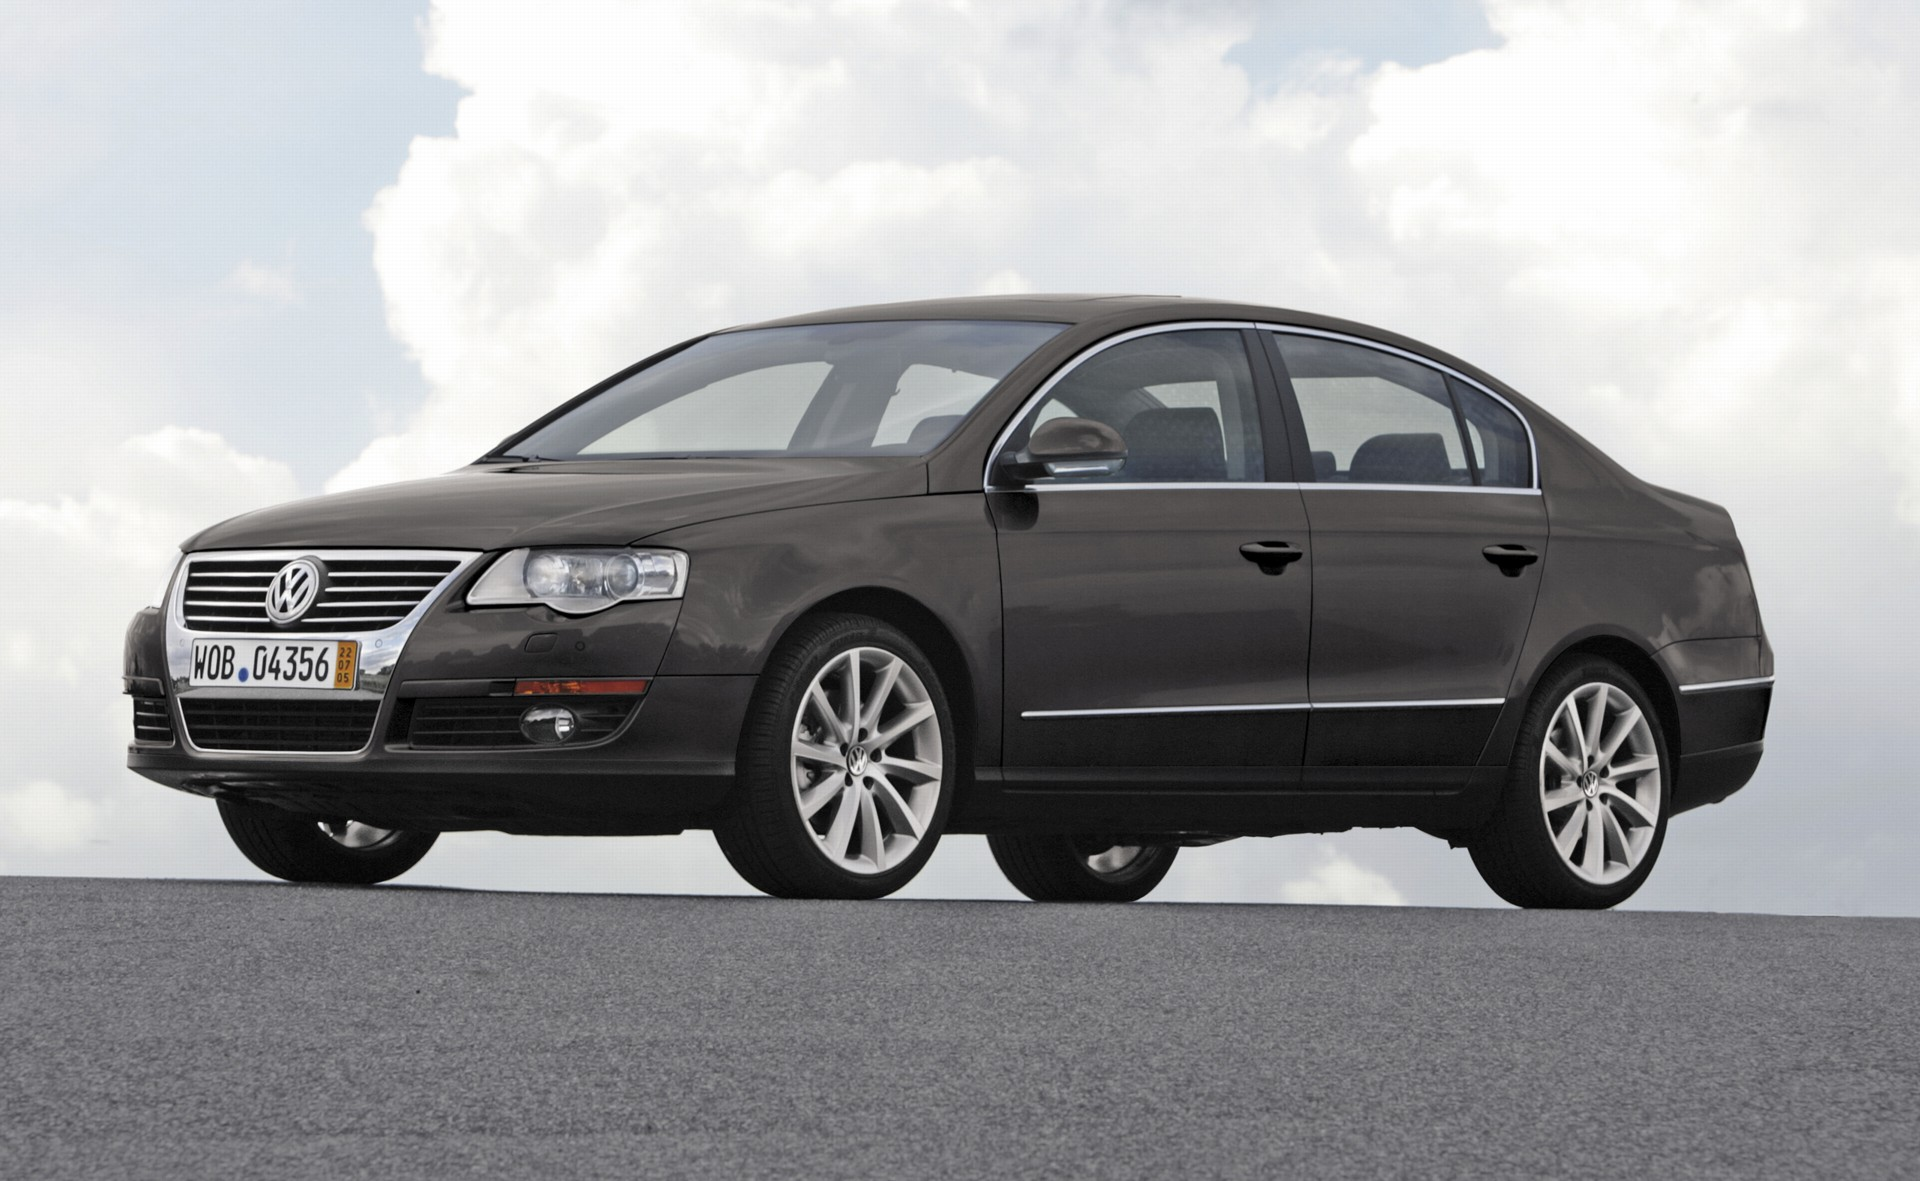 2007 Volkswagen Passat Owners Manual